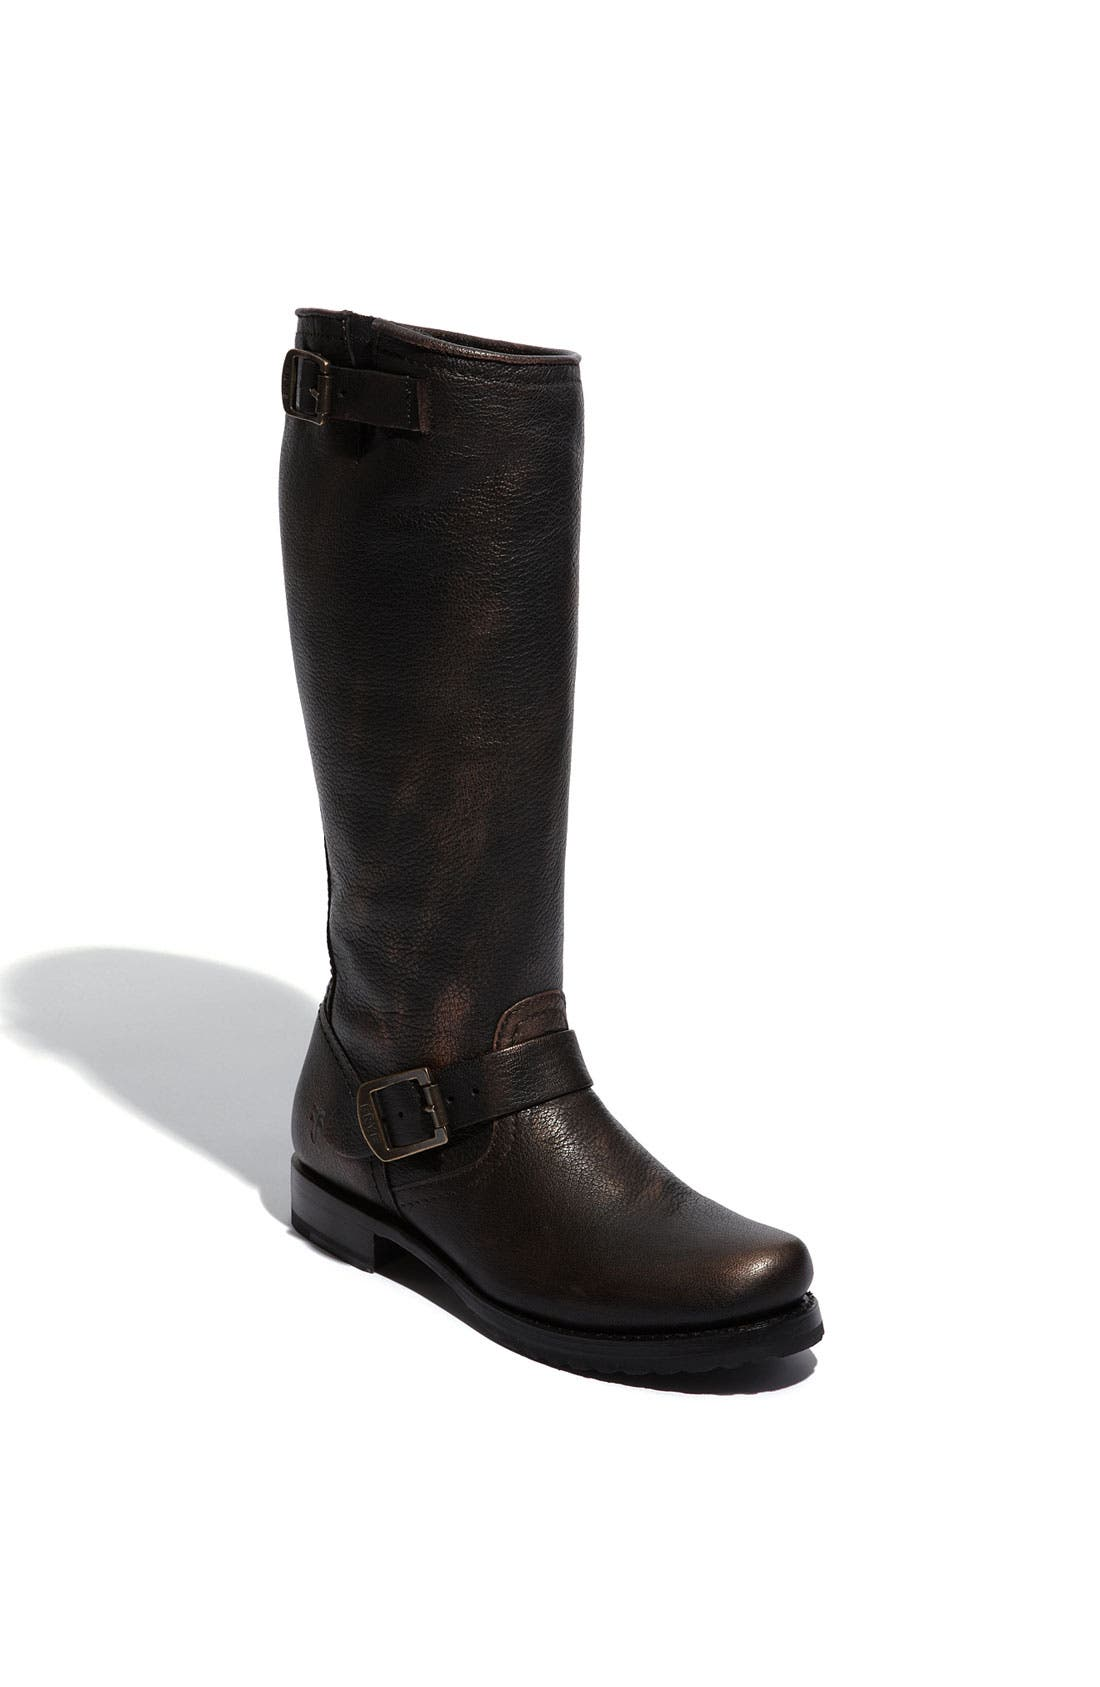 Alternate Image 1 Selected - Frye 'Veronica' Slouch Boot